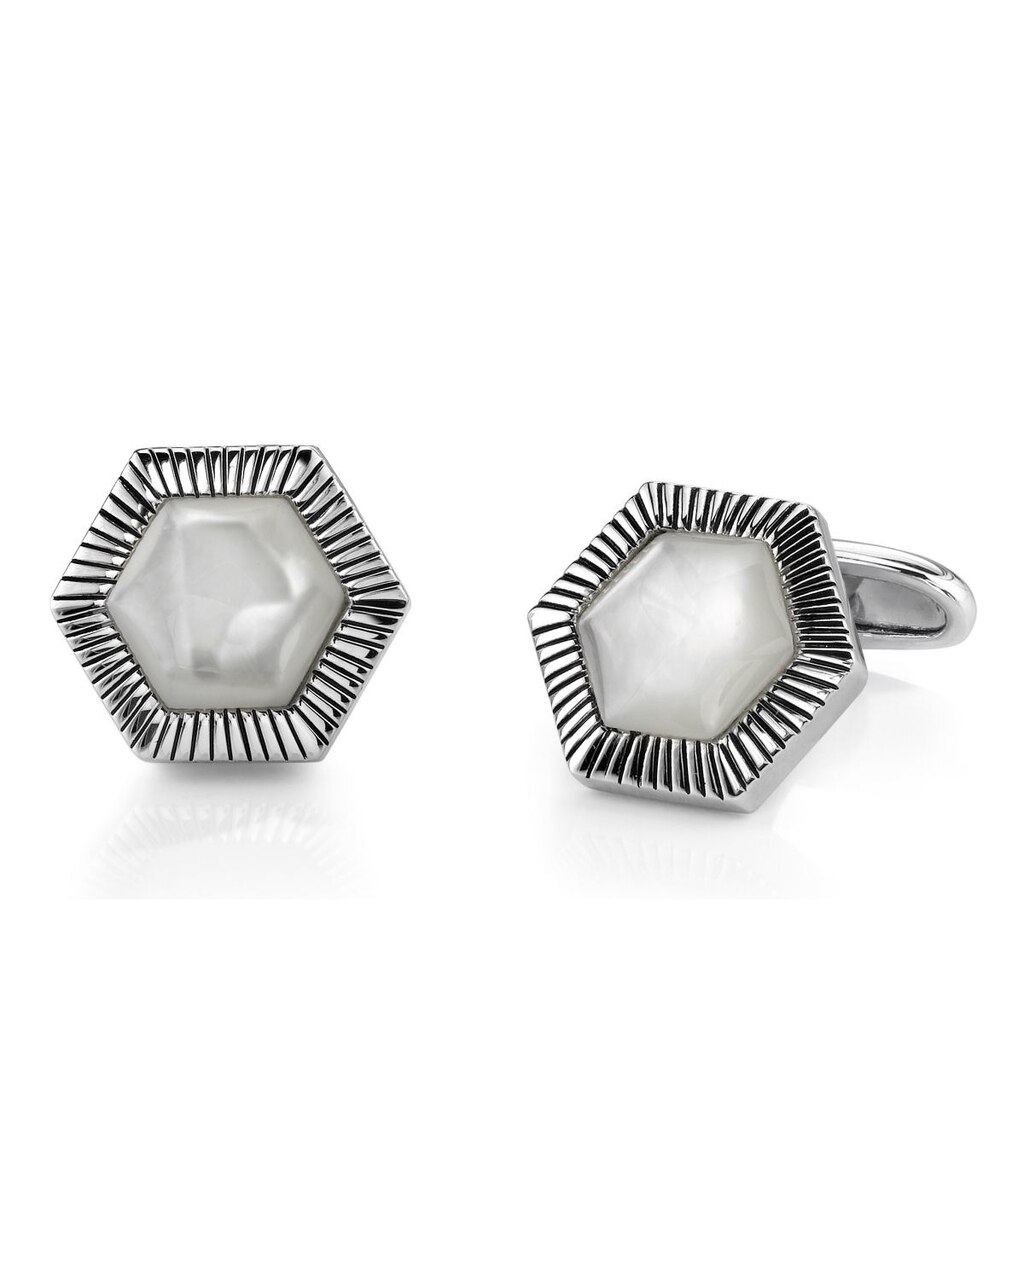 These stunning cufflinks feature beautiful mother of pearl linings